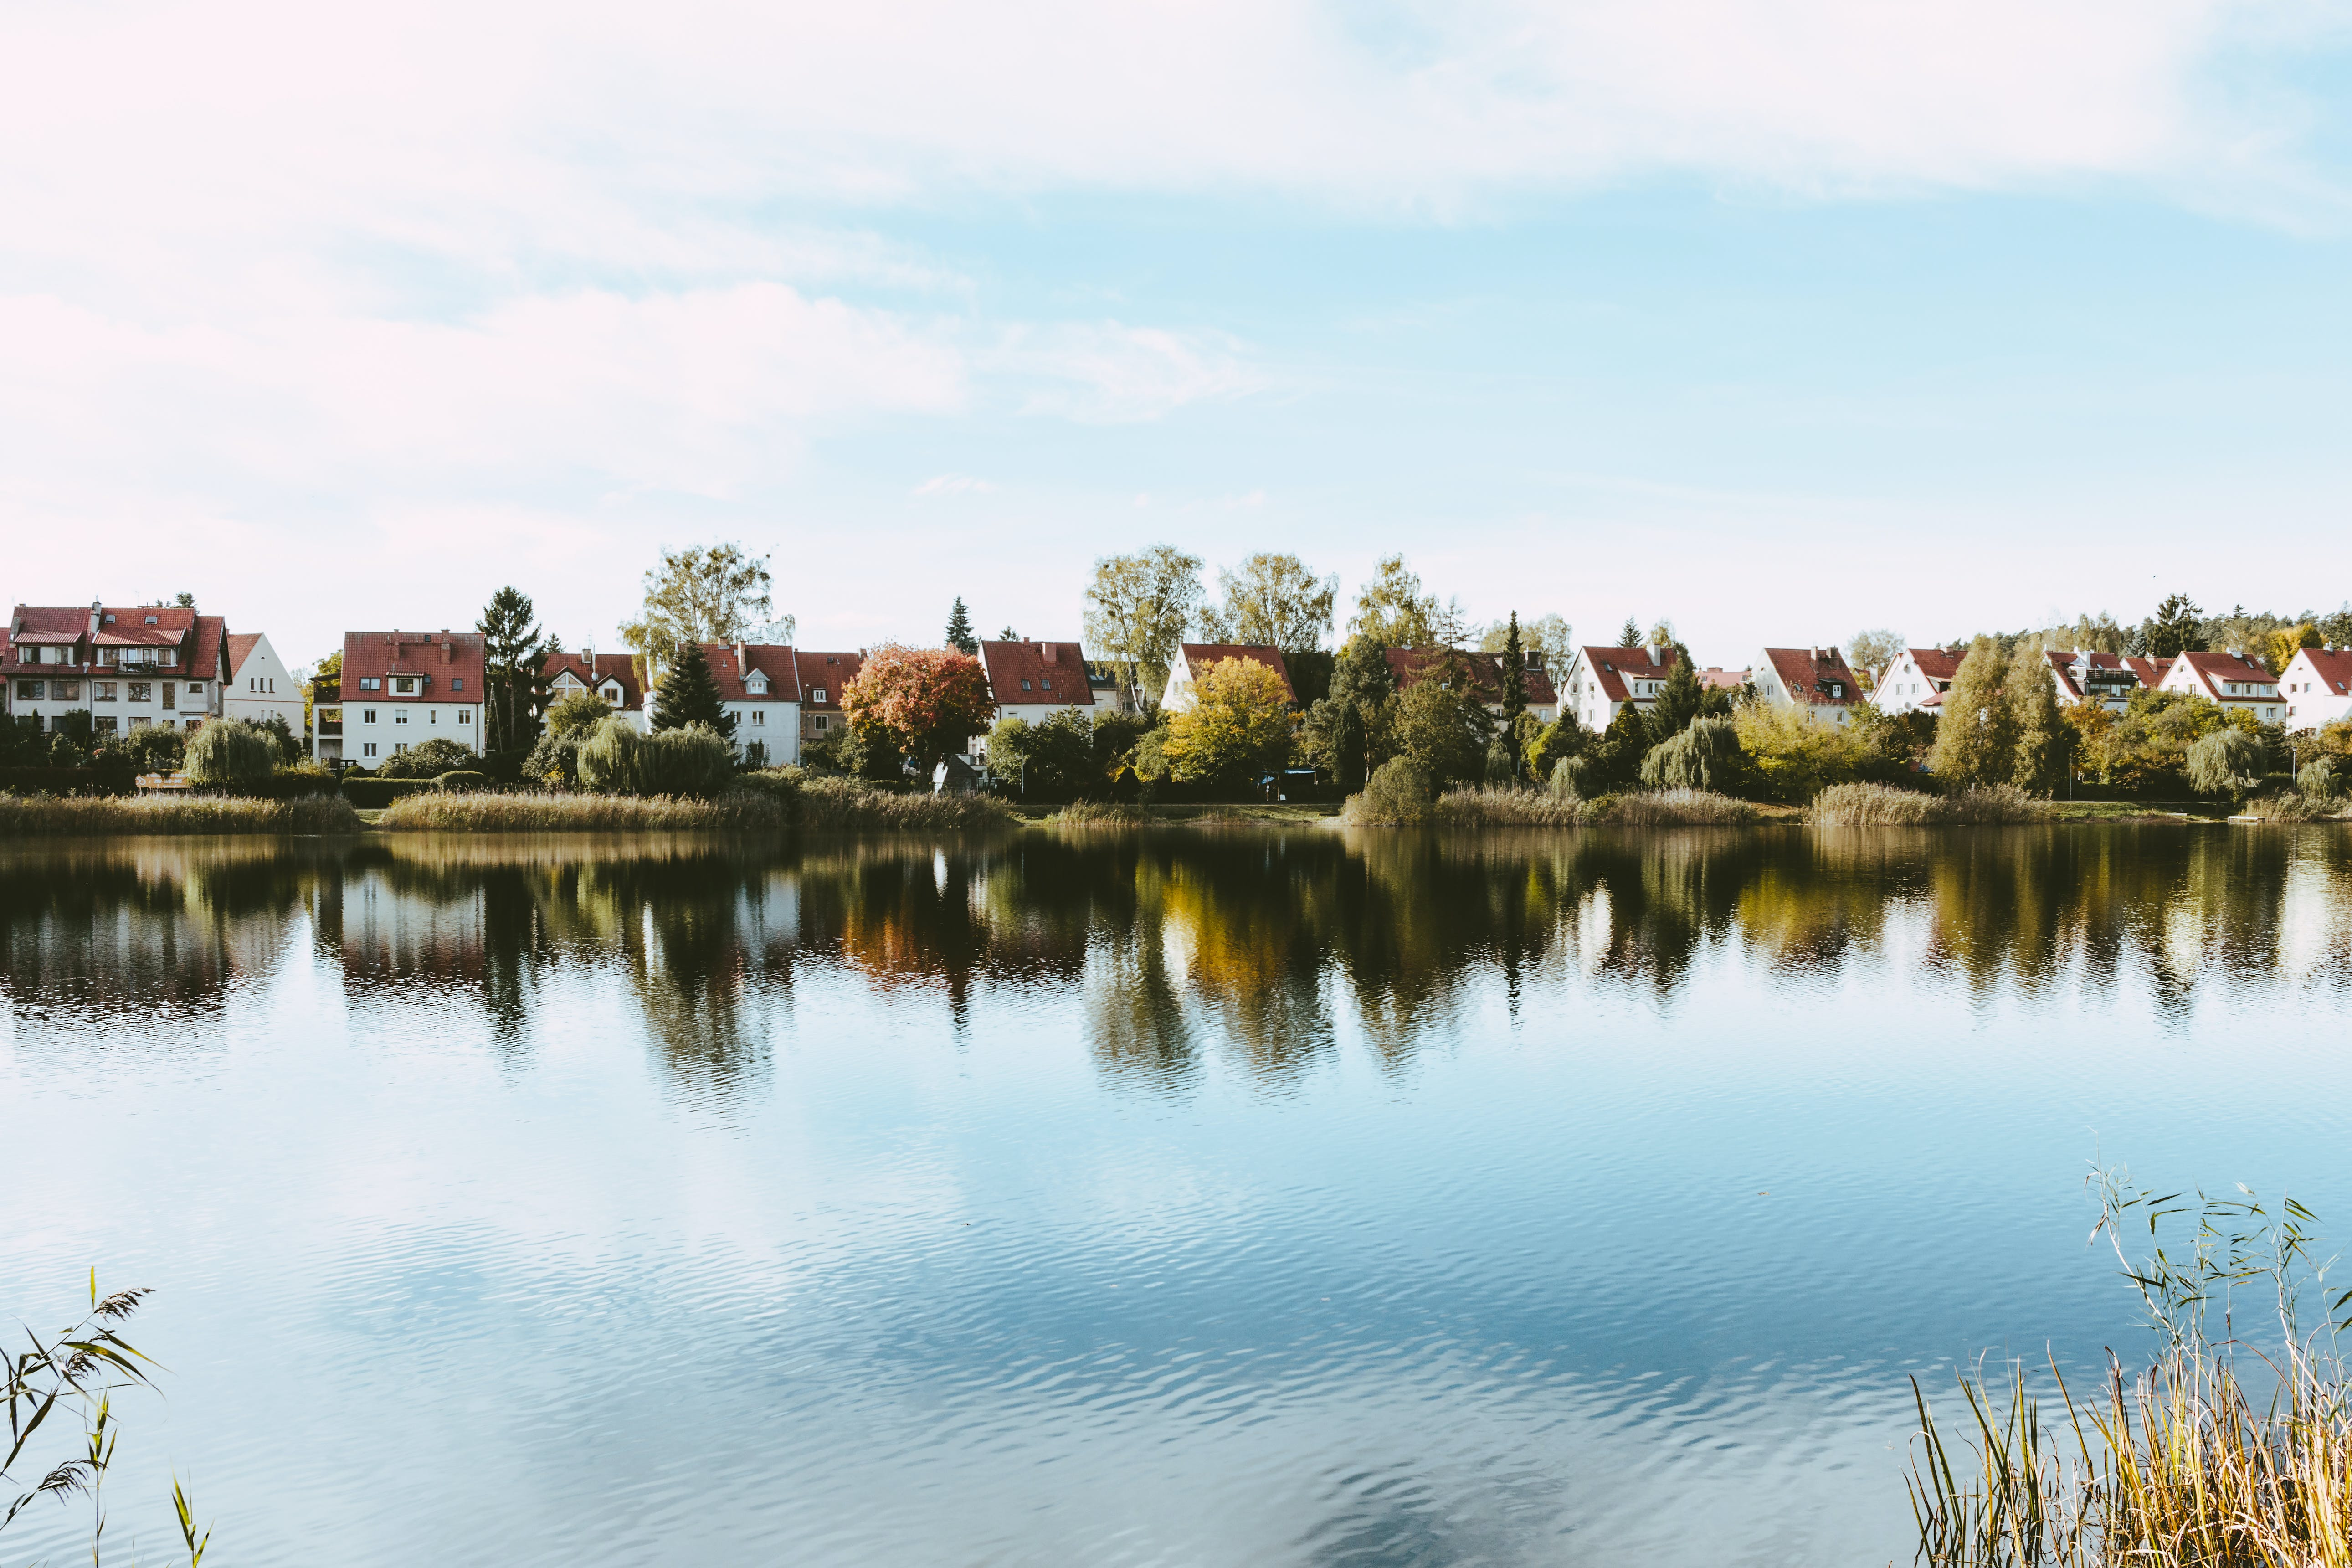 Village Houses Near Rippling Body of Water